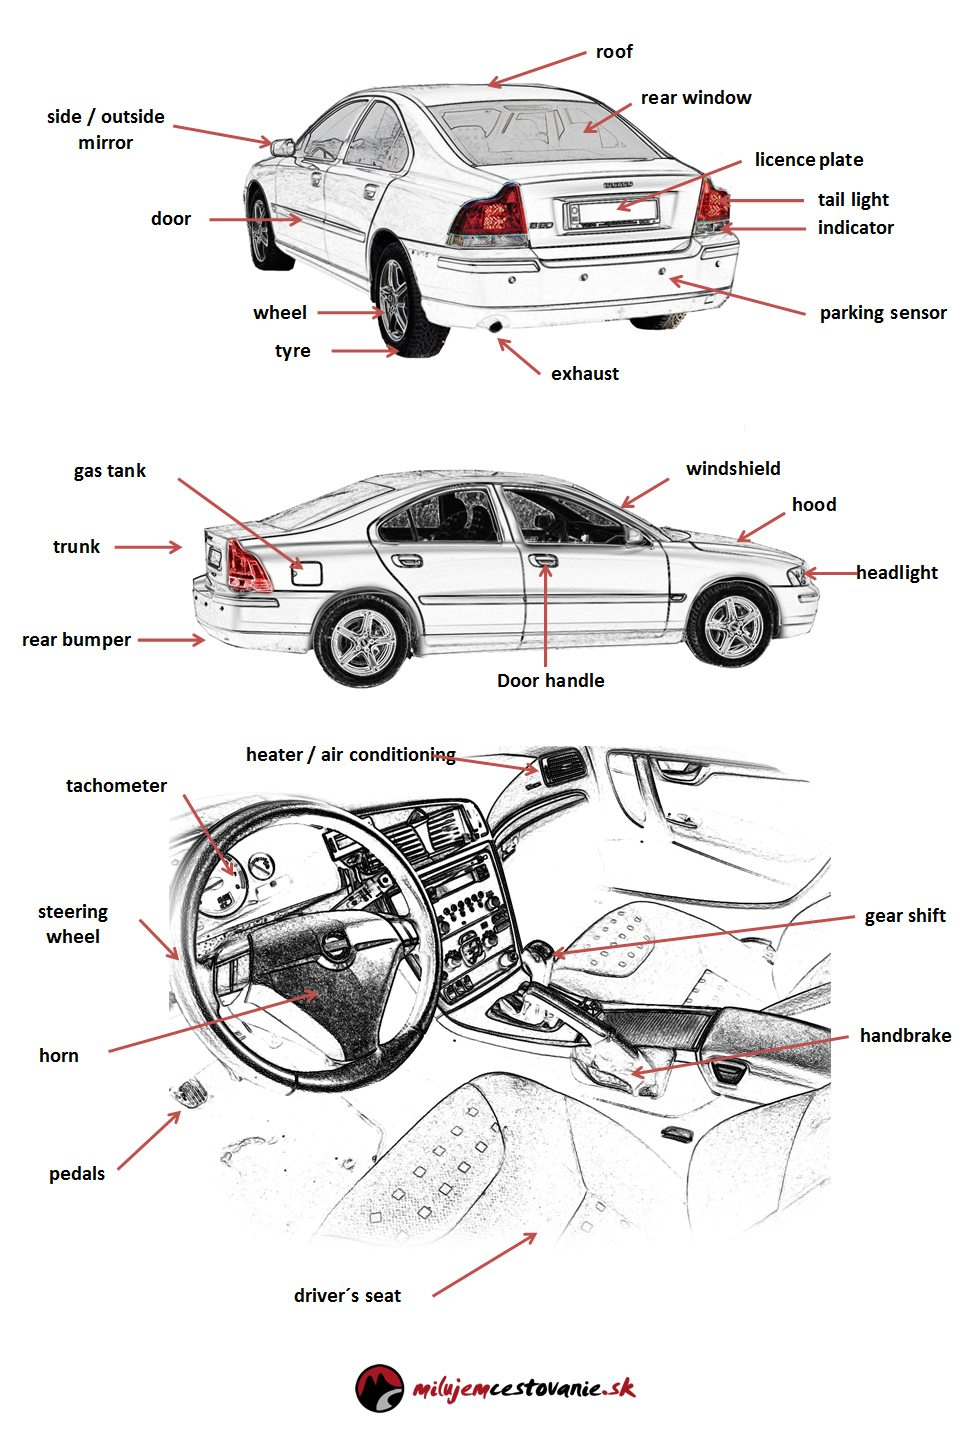 Auto Interior Diagram : Interior car parts names diagram automobile